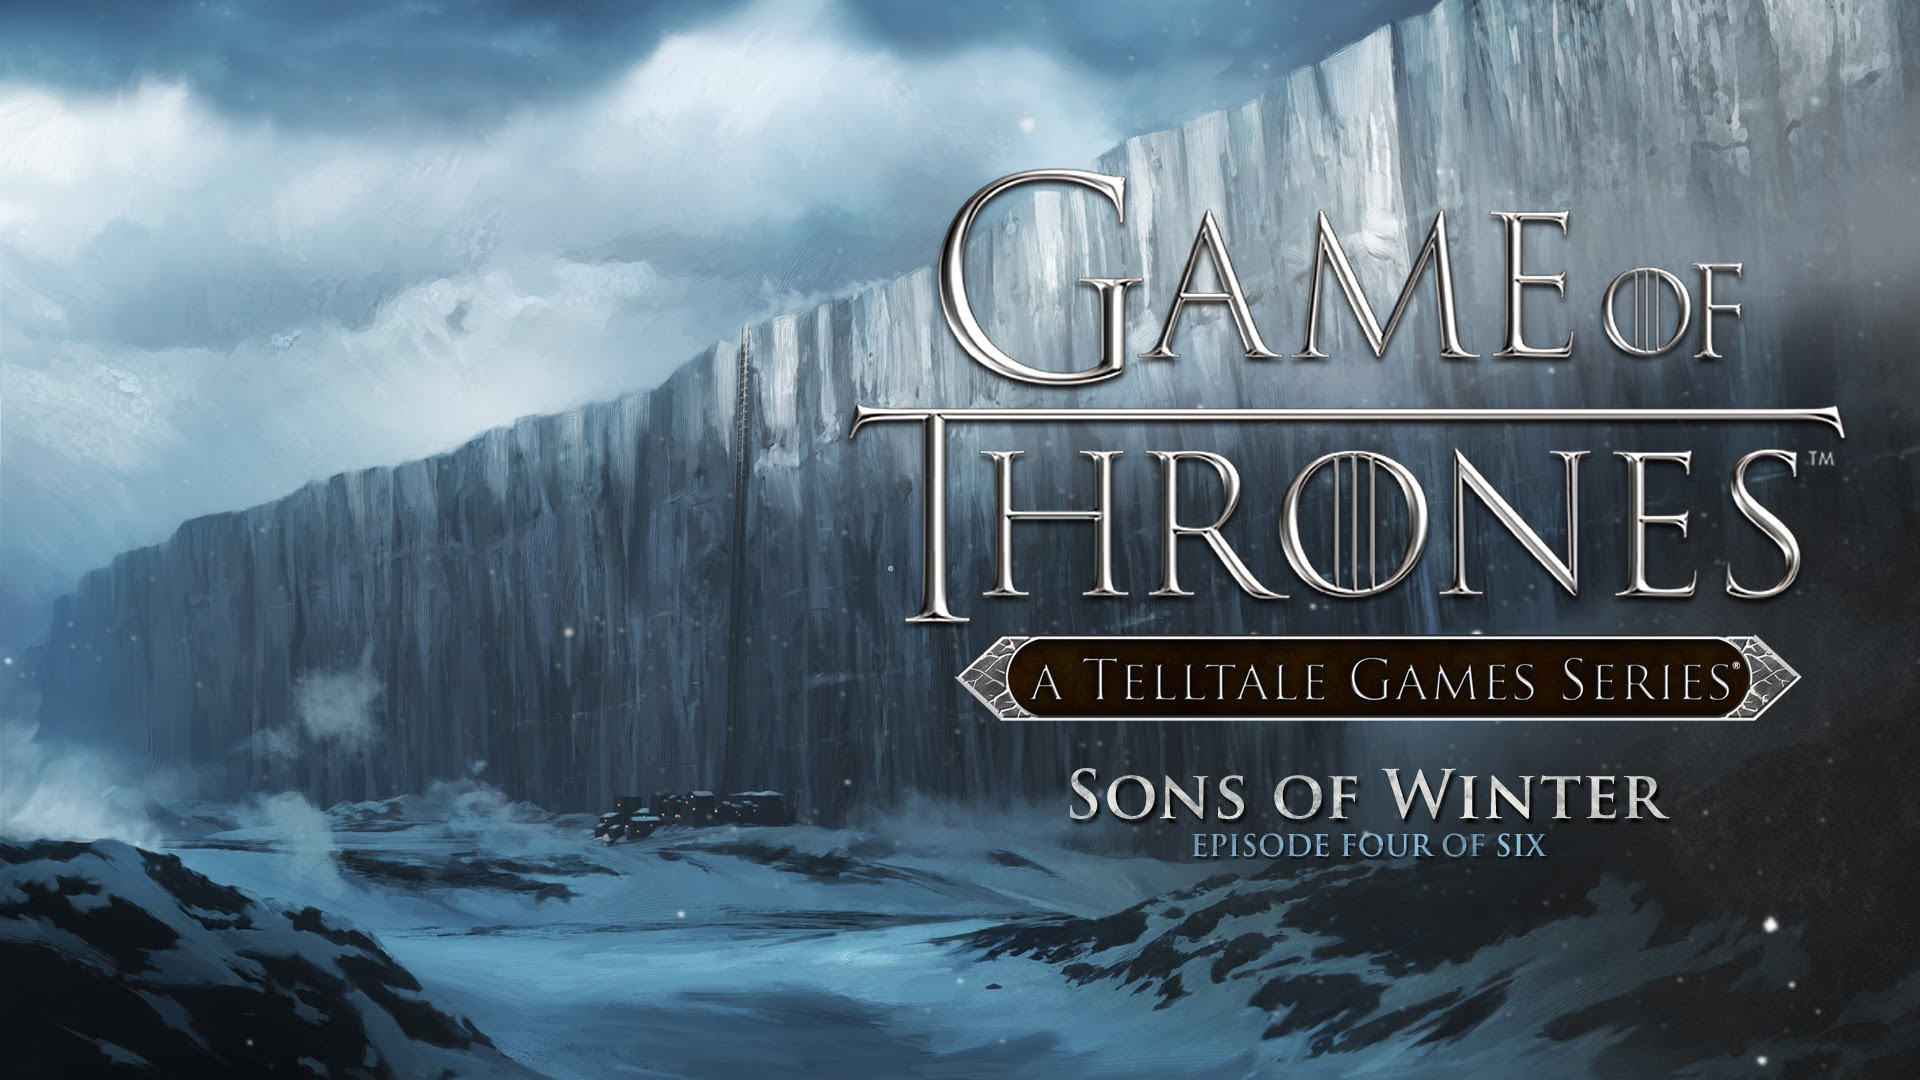 Game of Thrones Episode 4 trails 26 May arrival on PC